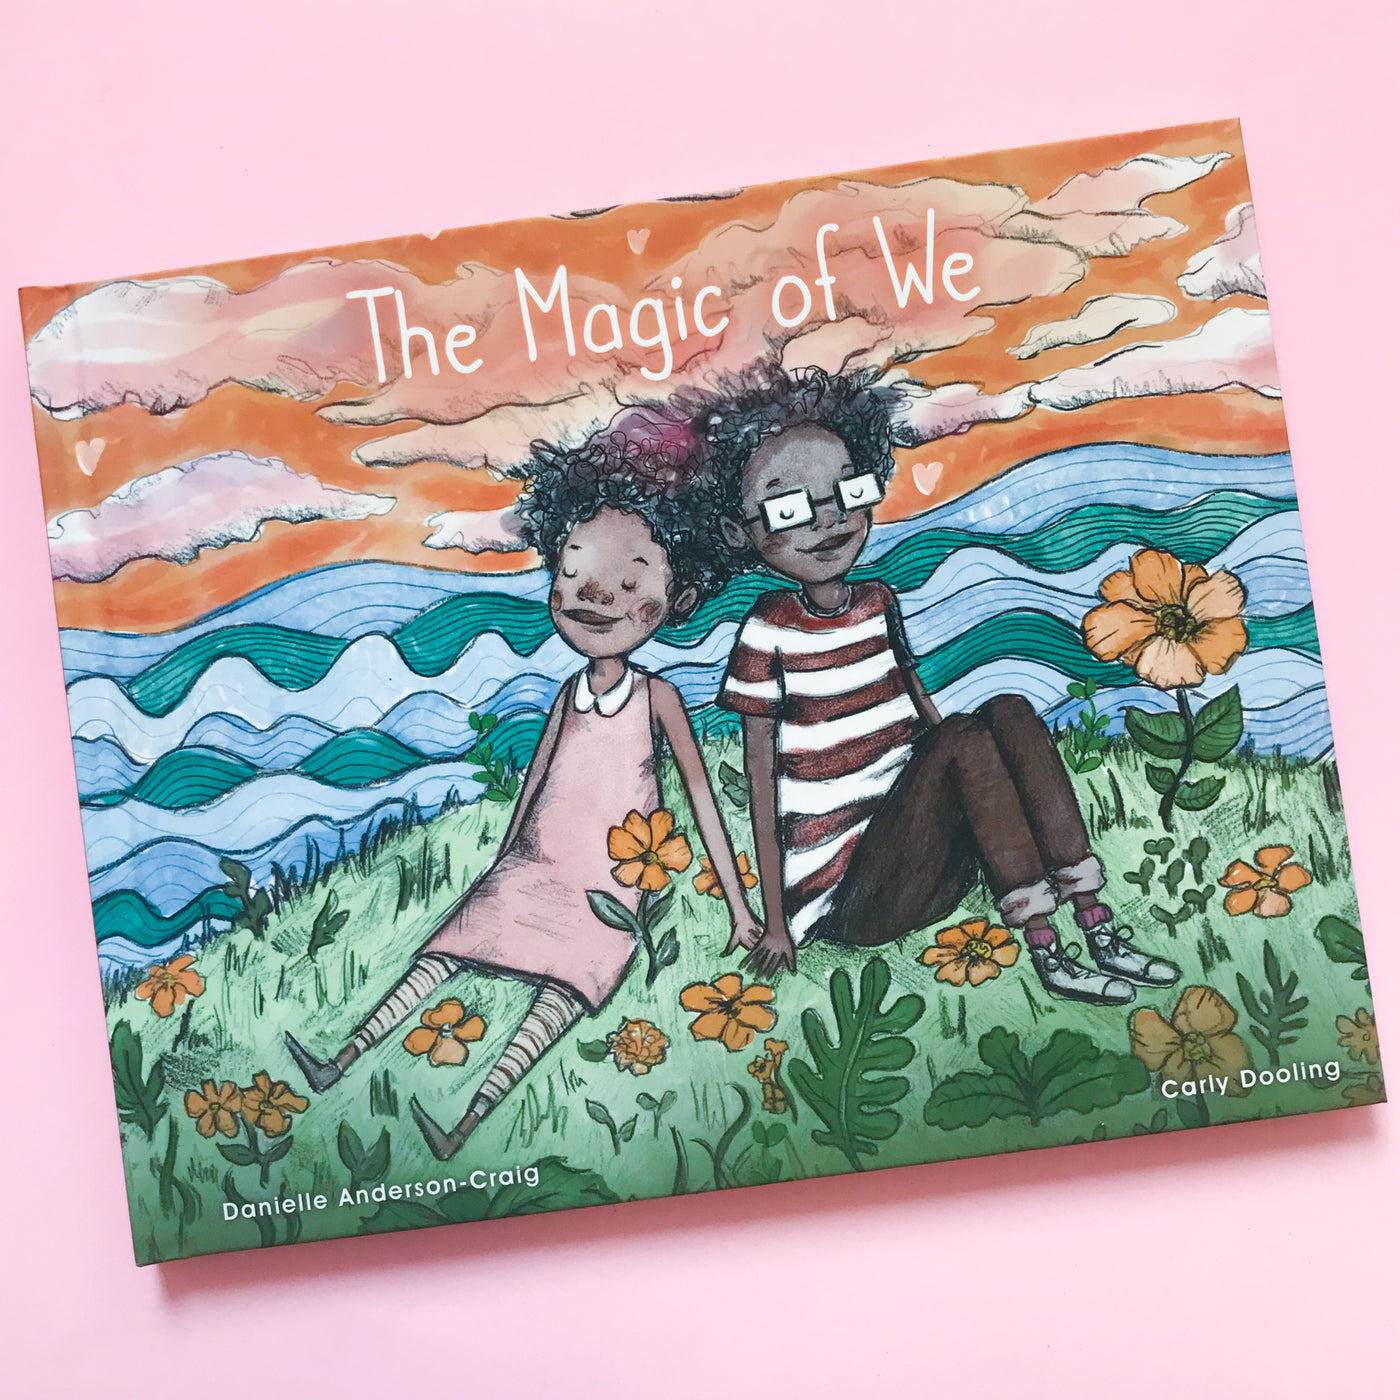 The Magic of We by Danielle Anderson-Craig and Carly Dooling